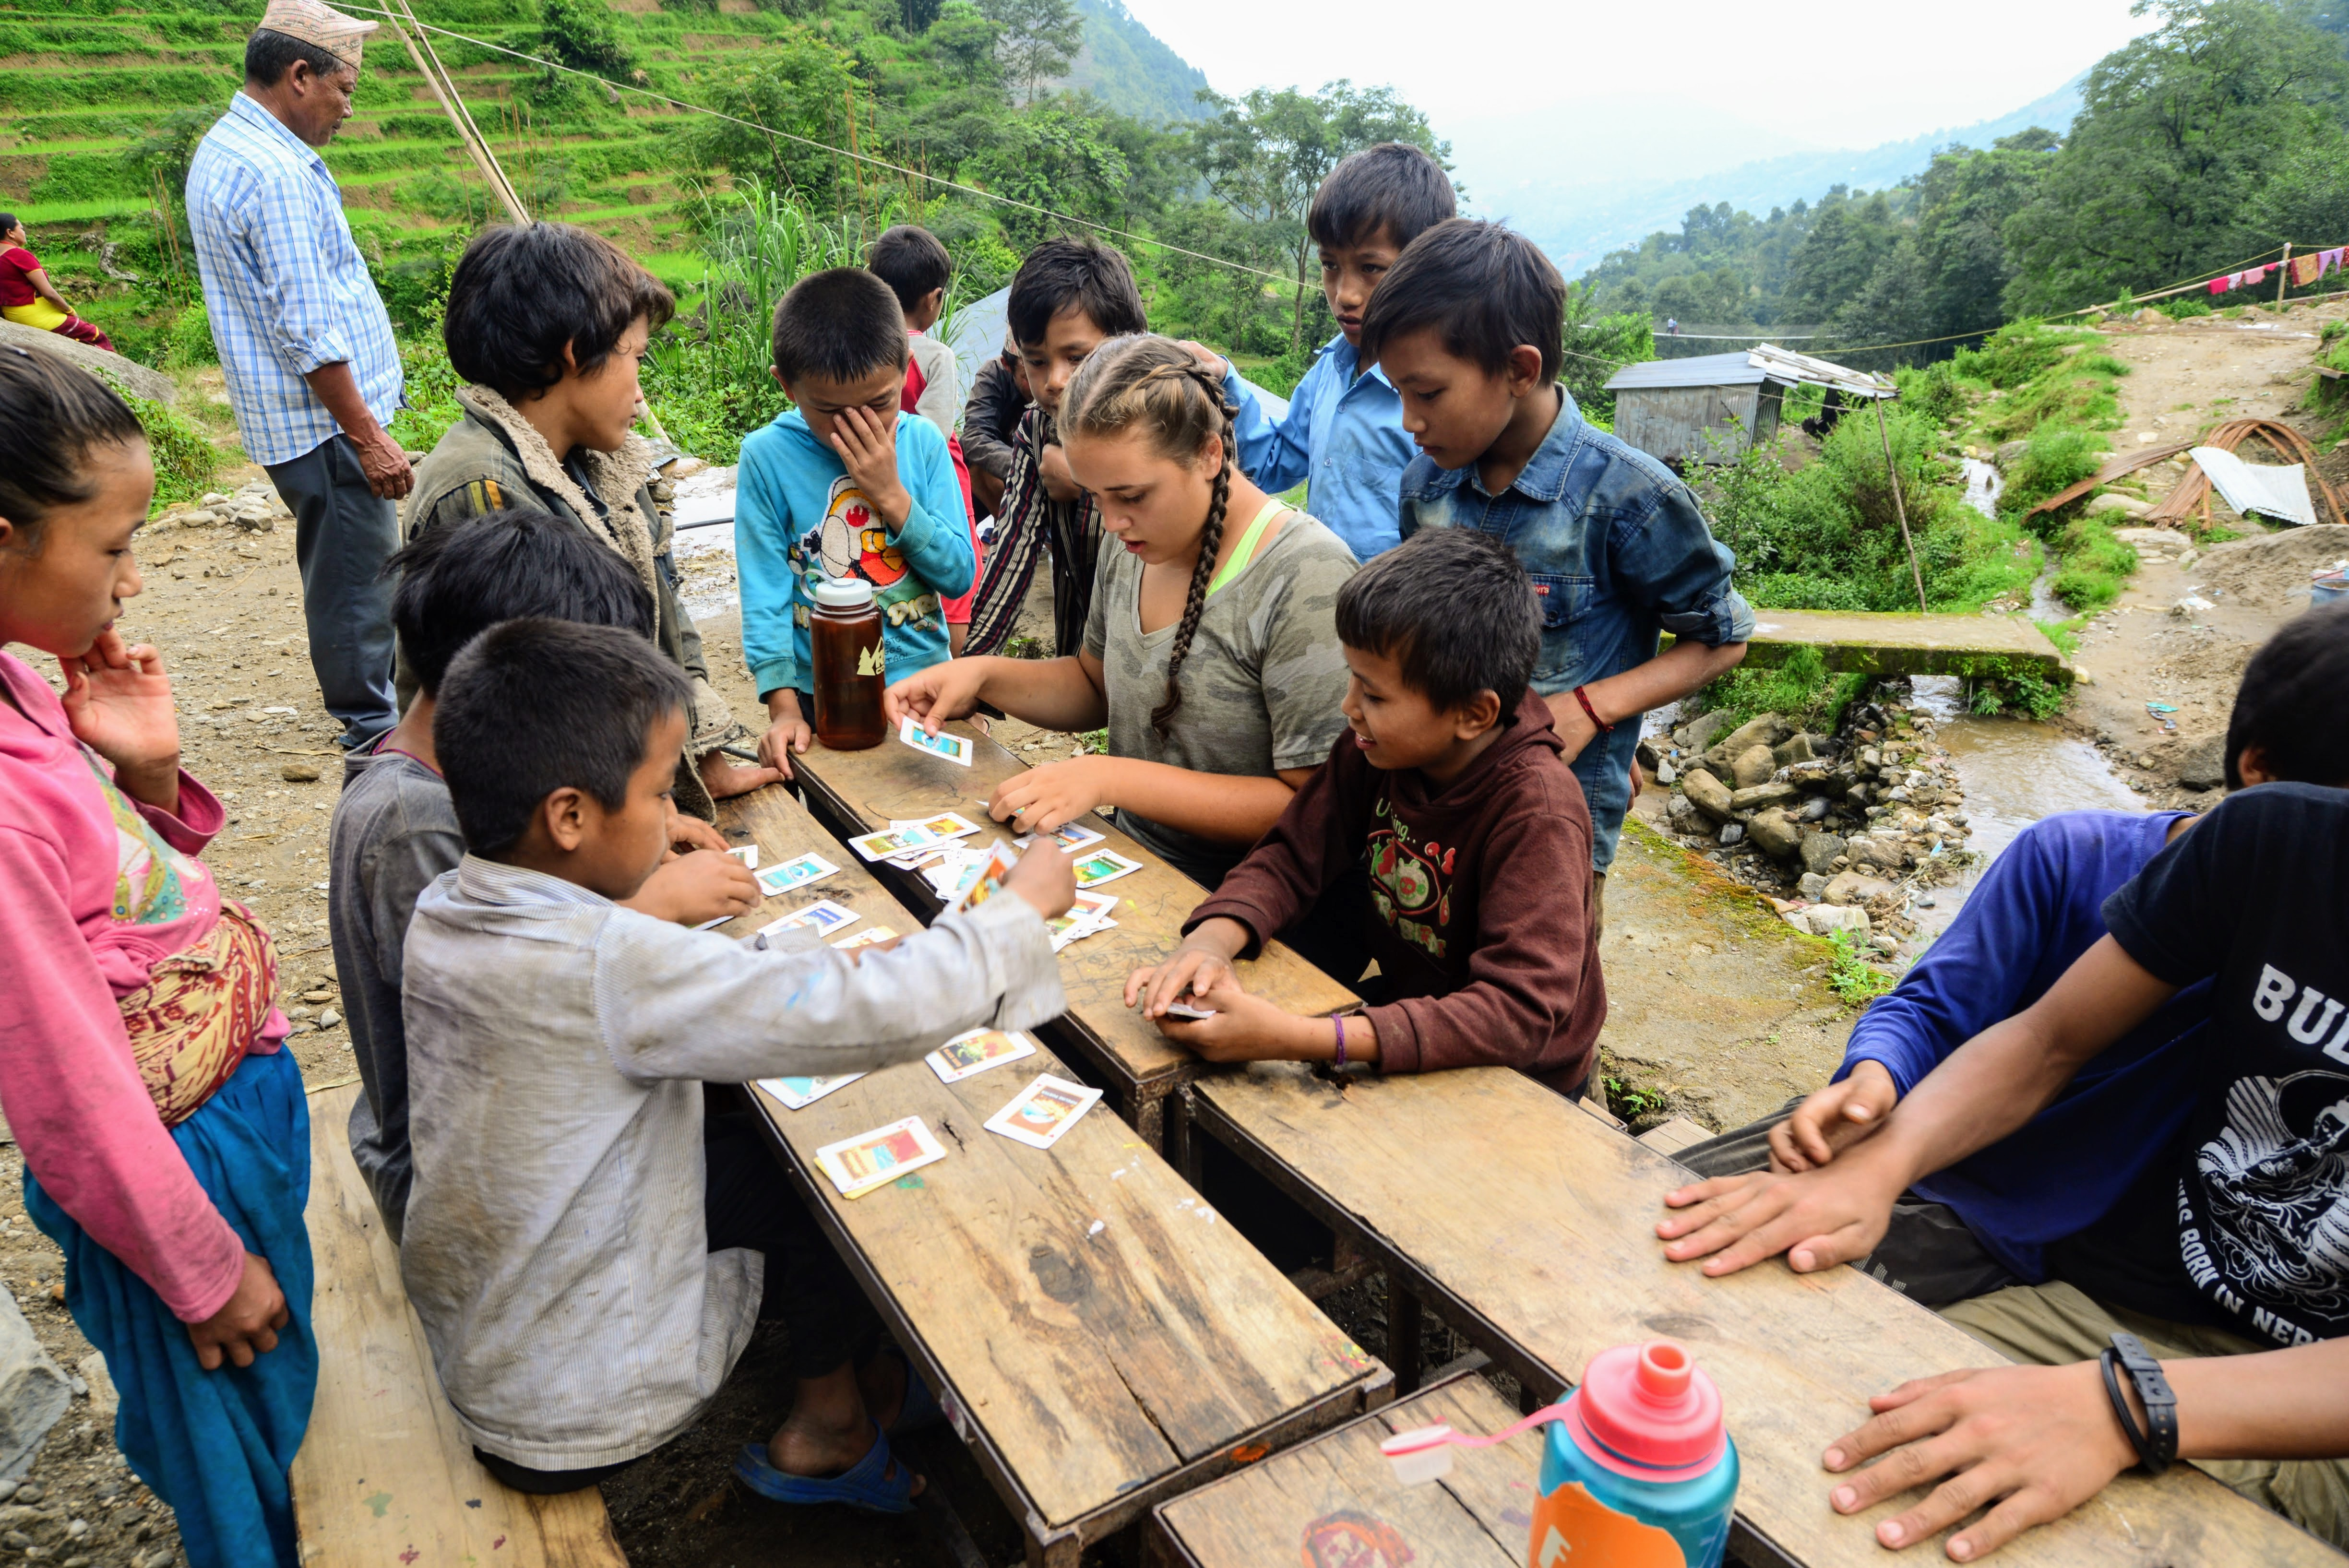 Summer Program - Study Abroad | Global Routes: Nepal. The Roof of the World. Service and Cultural Immersion.